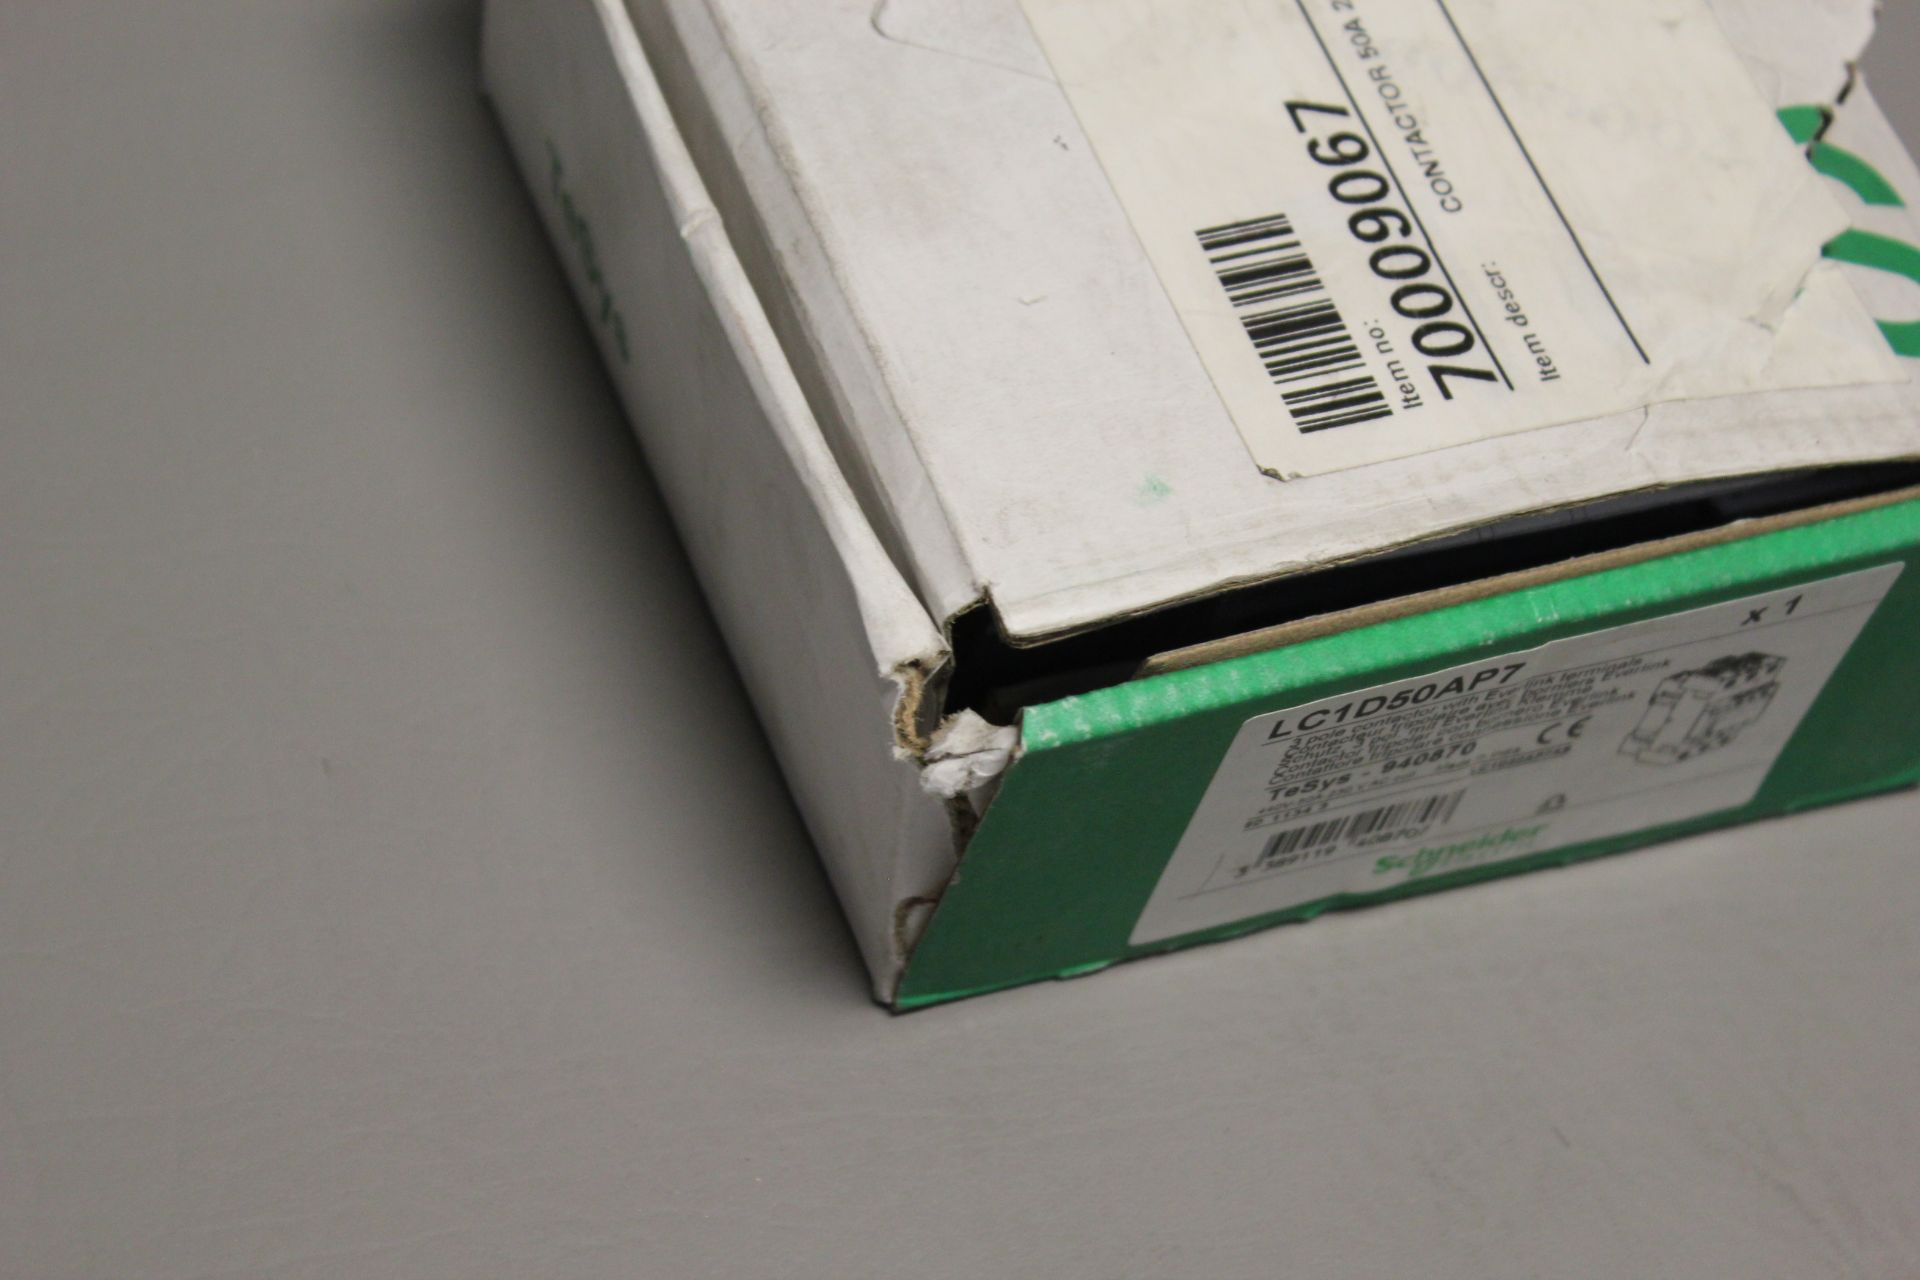 NEW SCHNEIDER 3 POLE CONTACTOR - Image 3 of 6